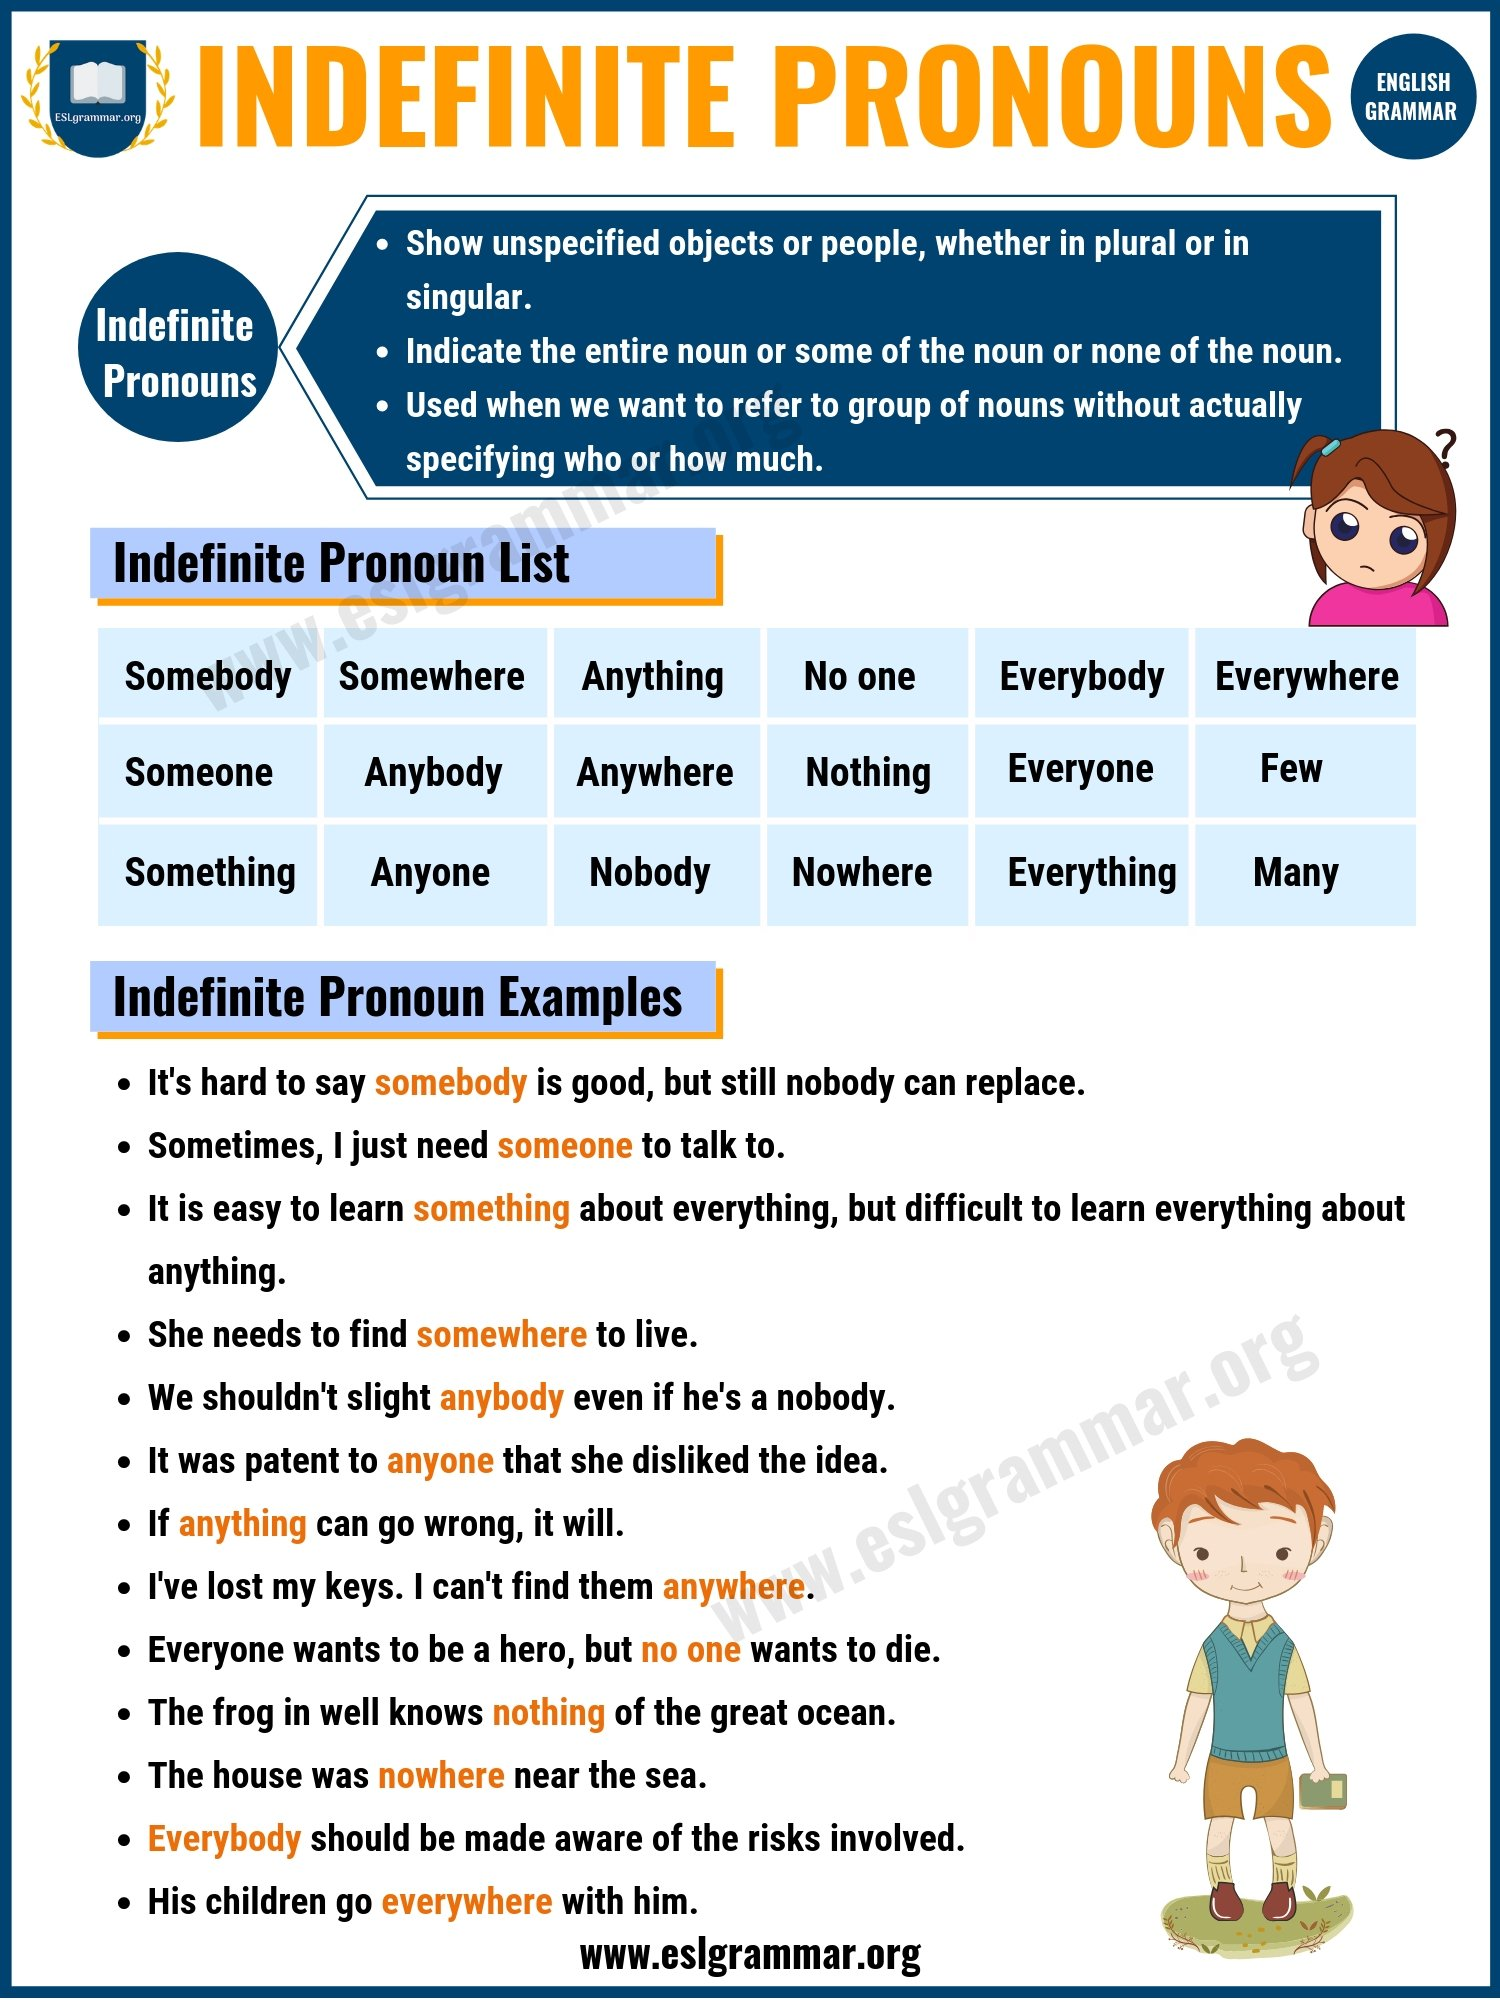 Indefinite Pronouns | Infographic